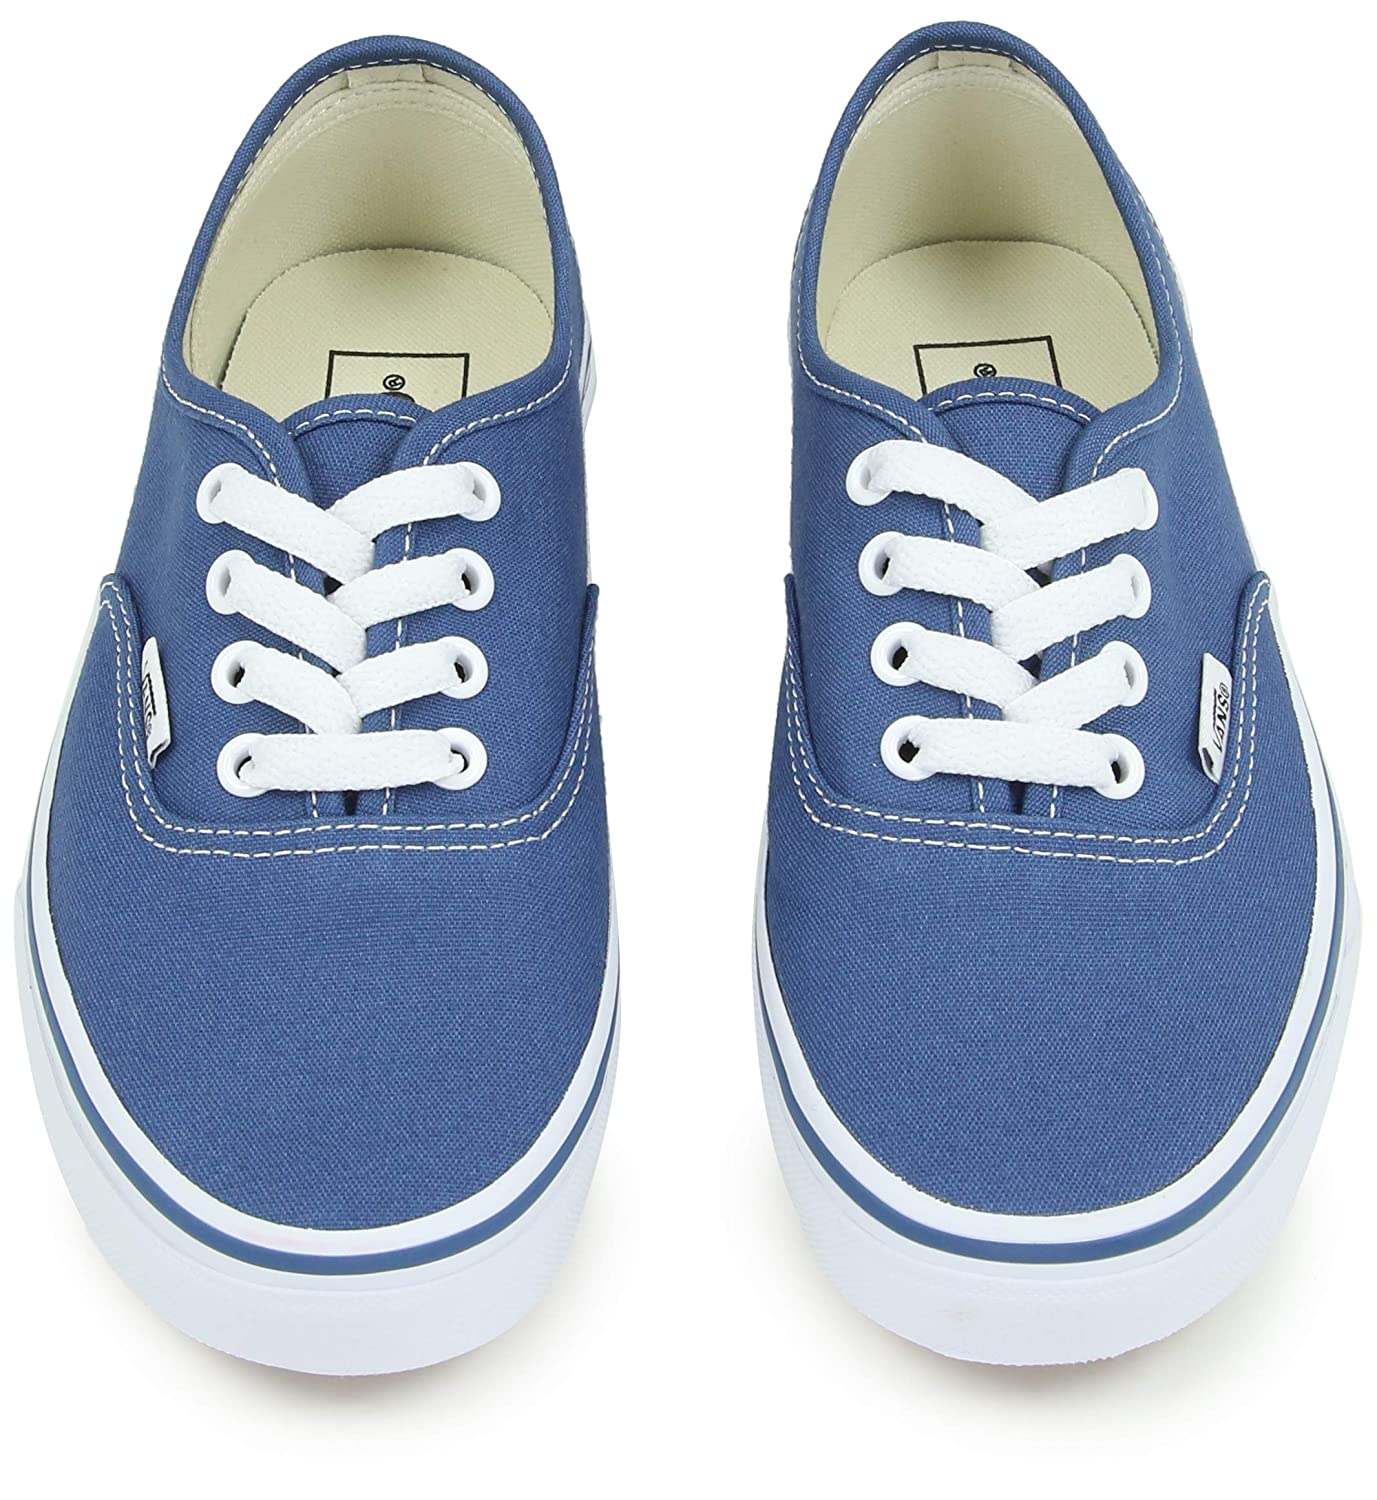 Adulte Baskets Authentic Vans Mixte Mode Vans U Xx1XqwC4